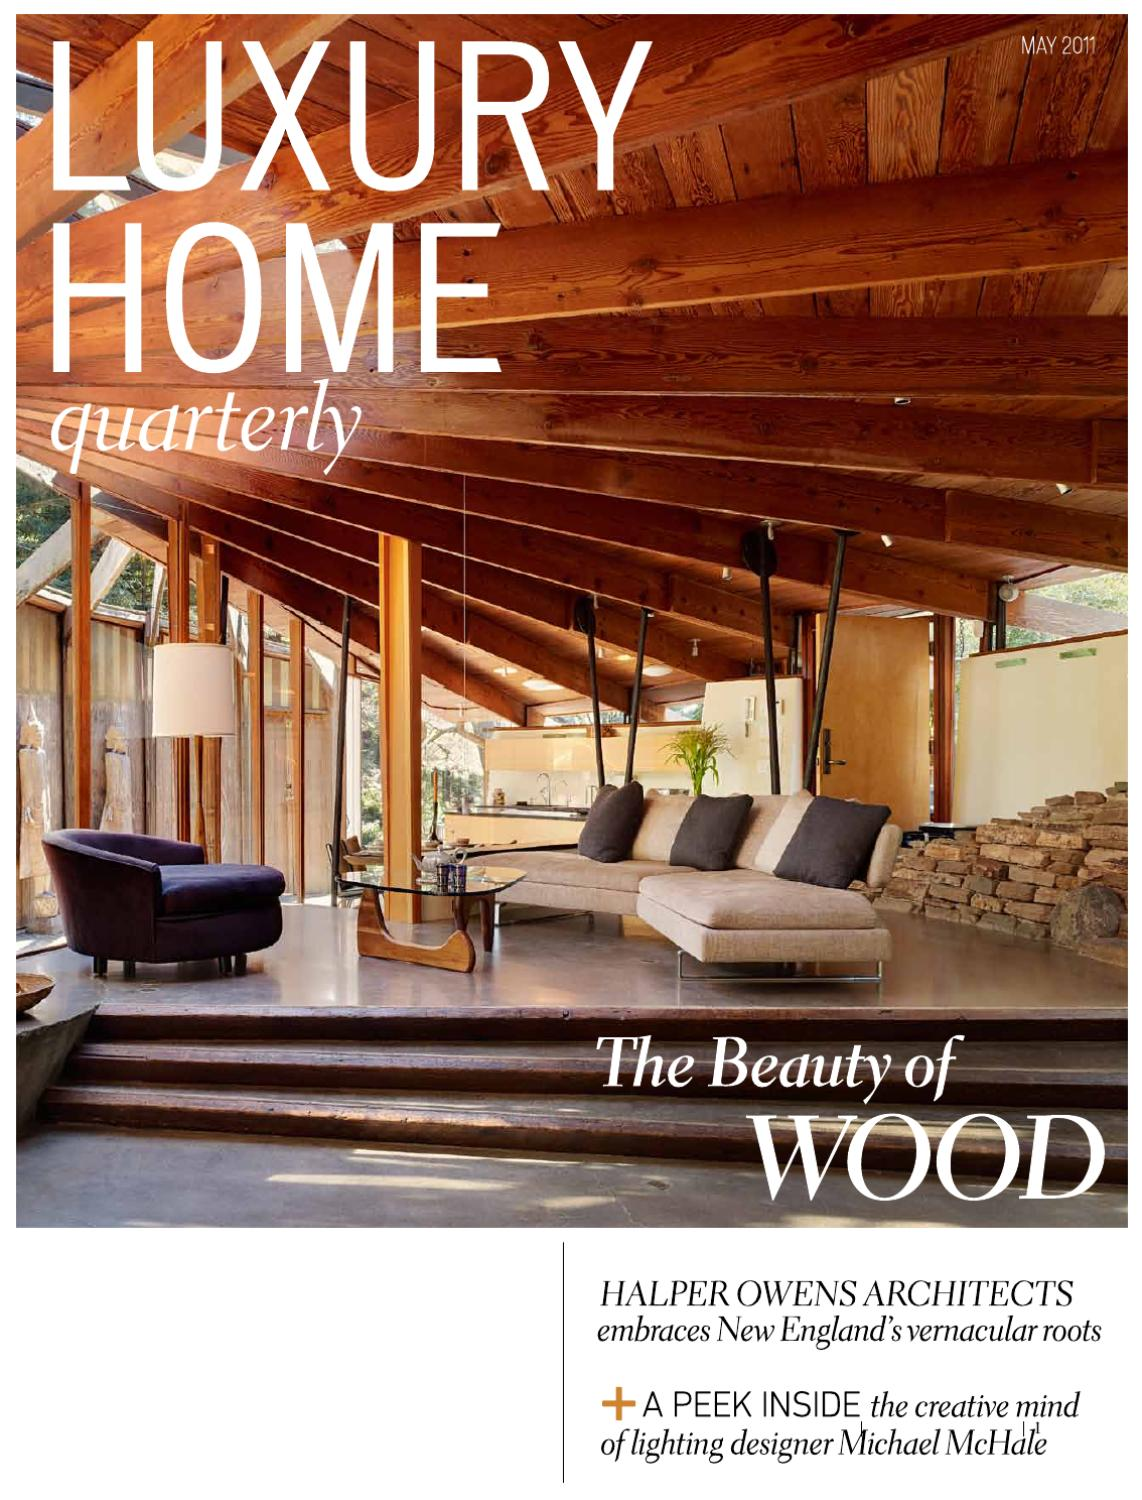 home lighting designer.  Luxury Home Quarterly Issue 7 by Molly Soat issuu